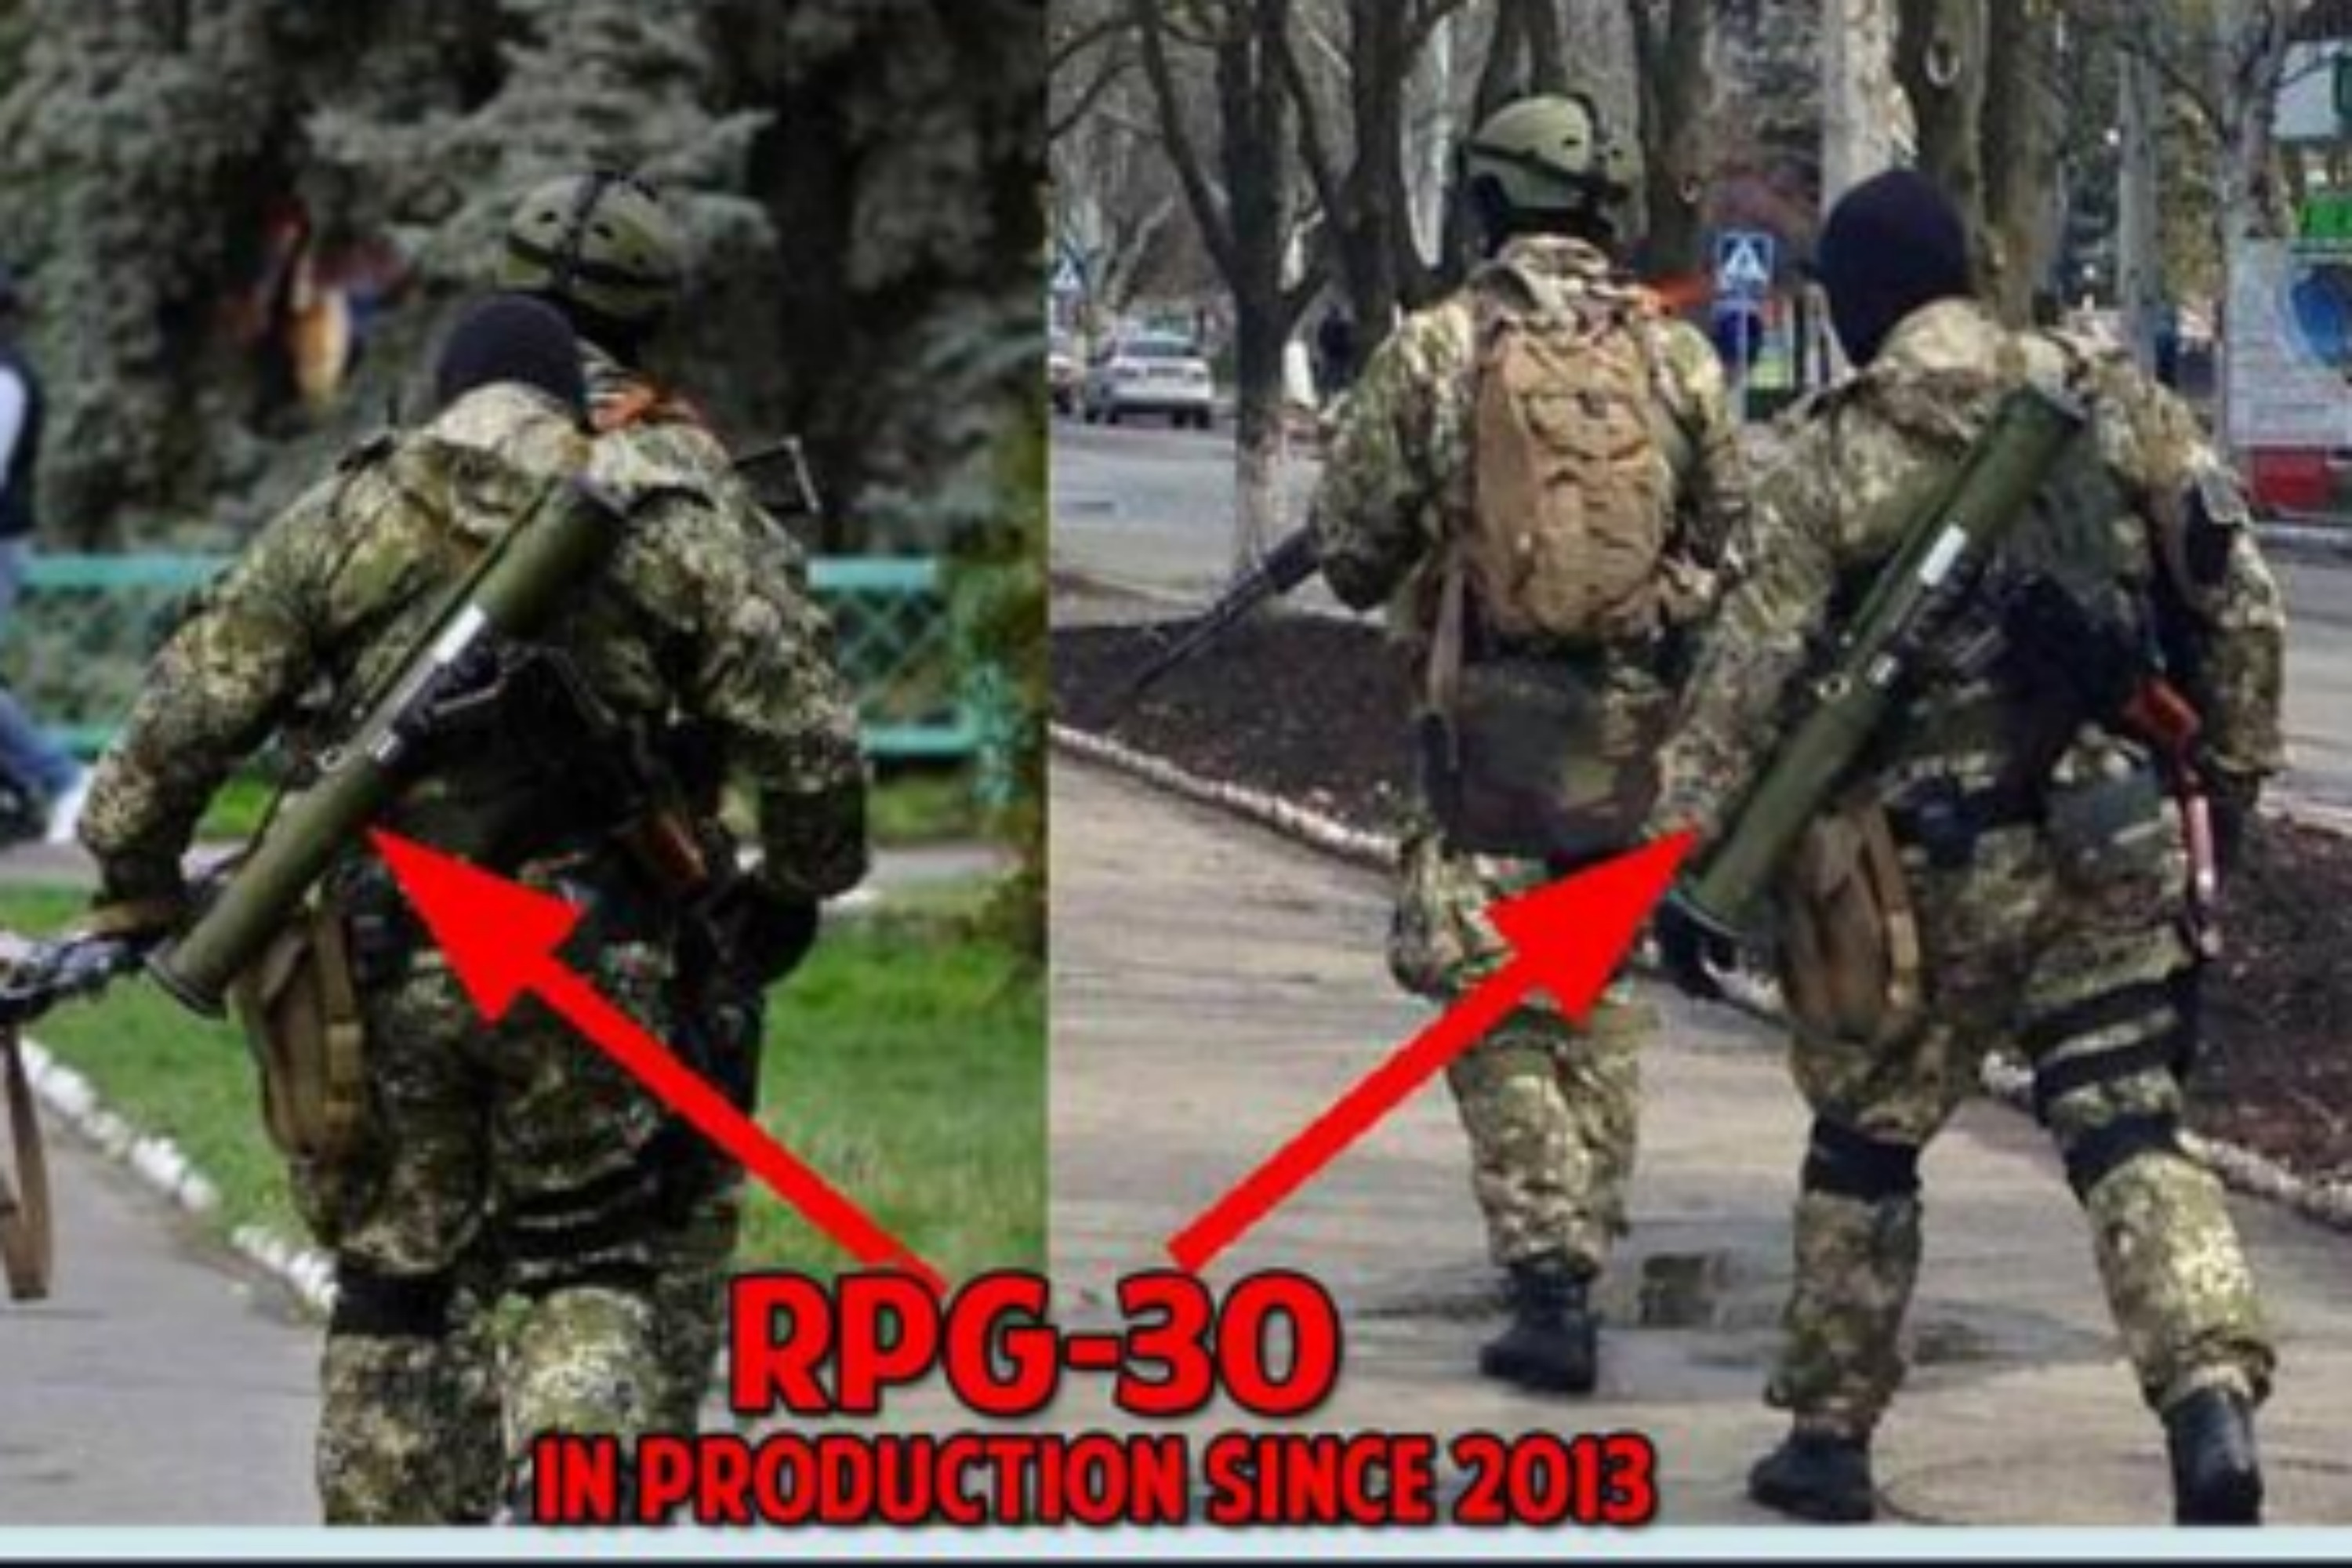 Paramiltary in Eastern Ukraine with RPG-30, in use only in Russia